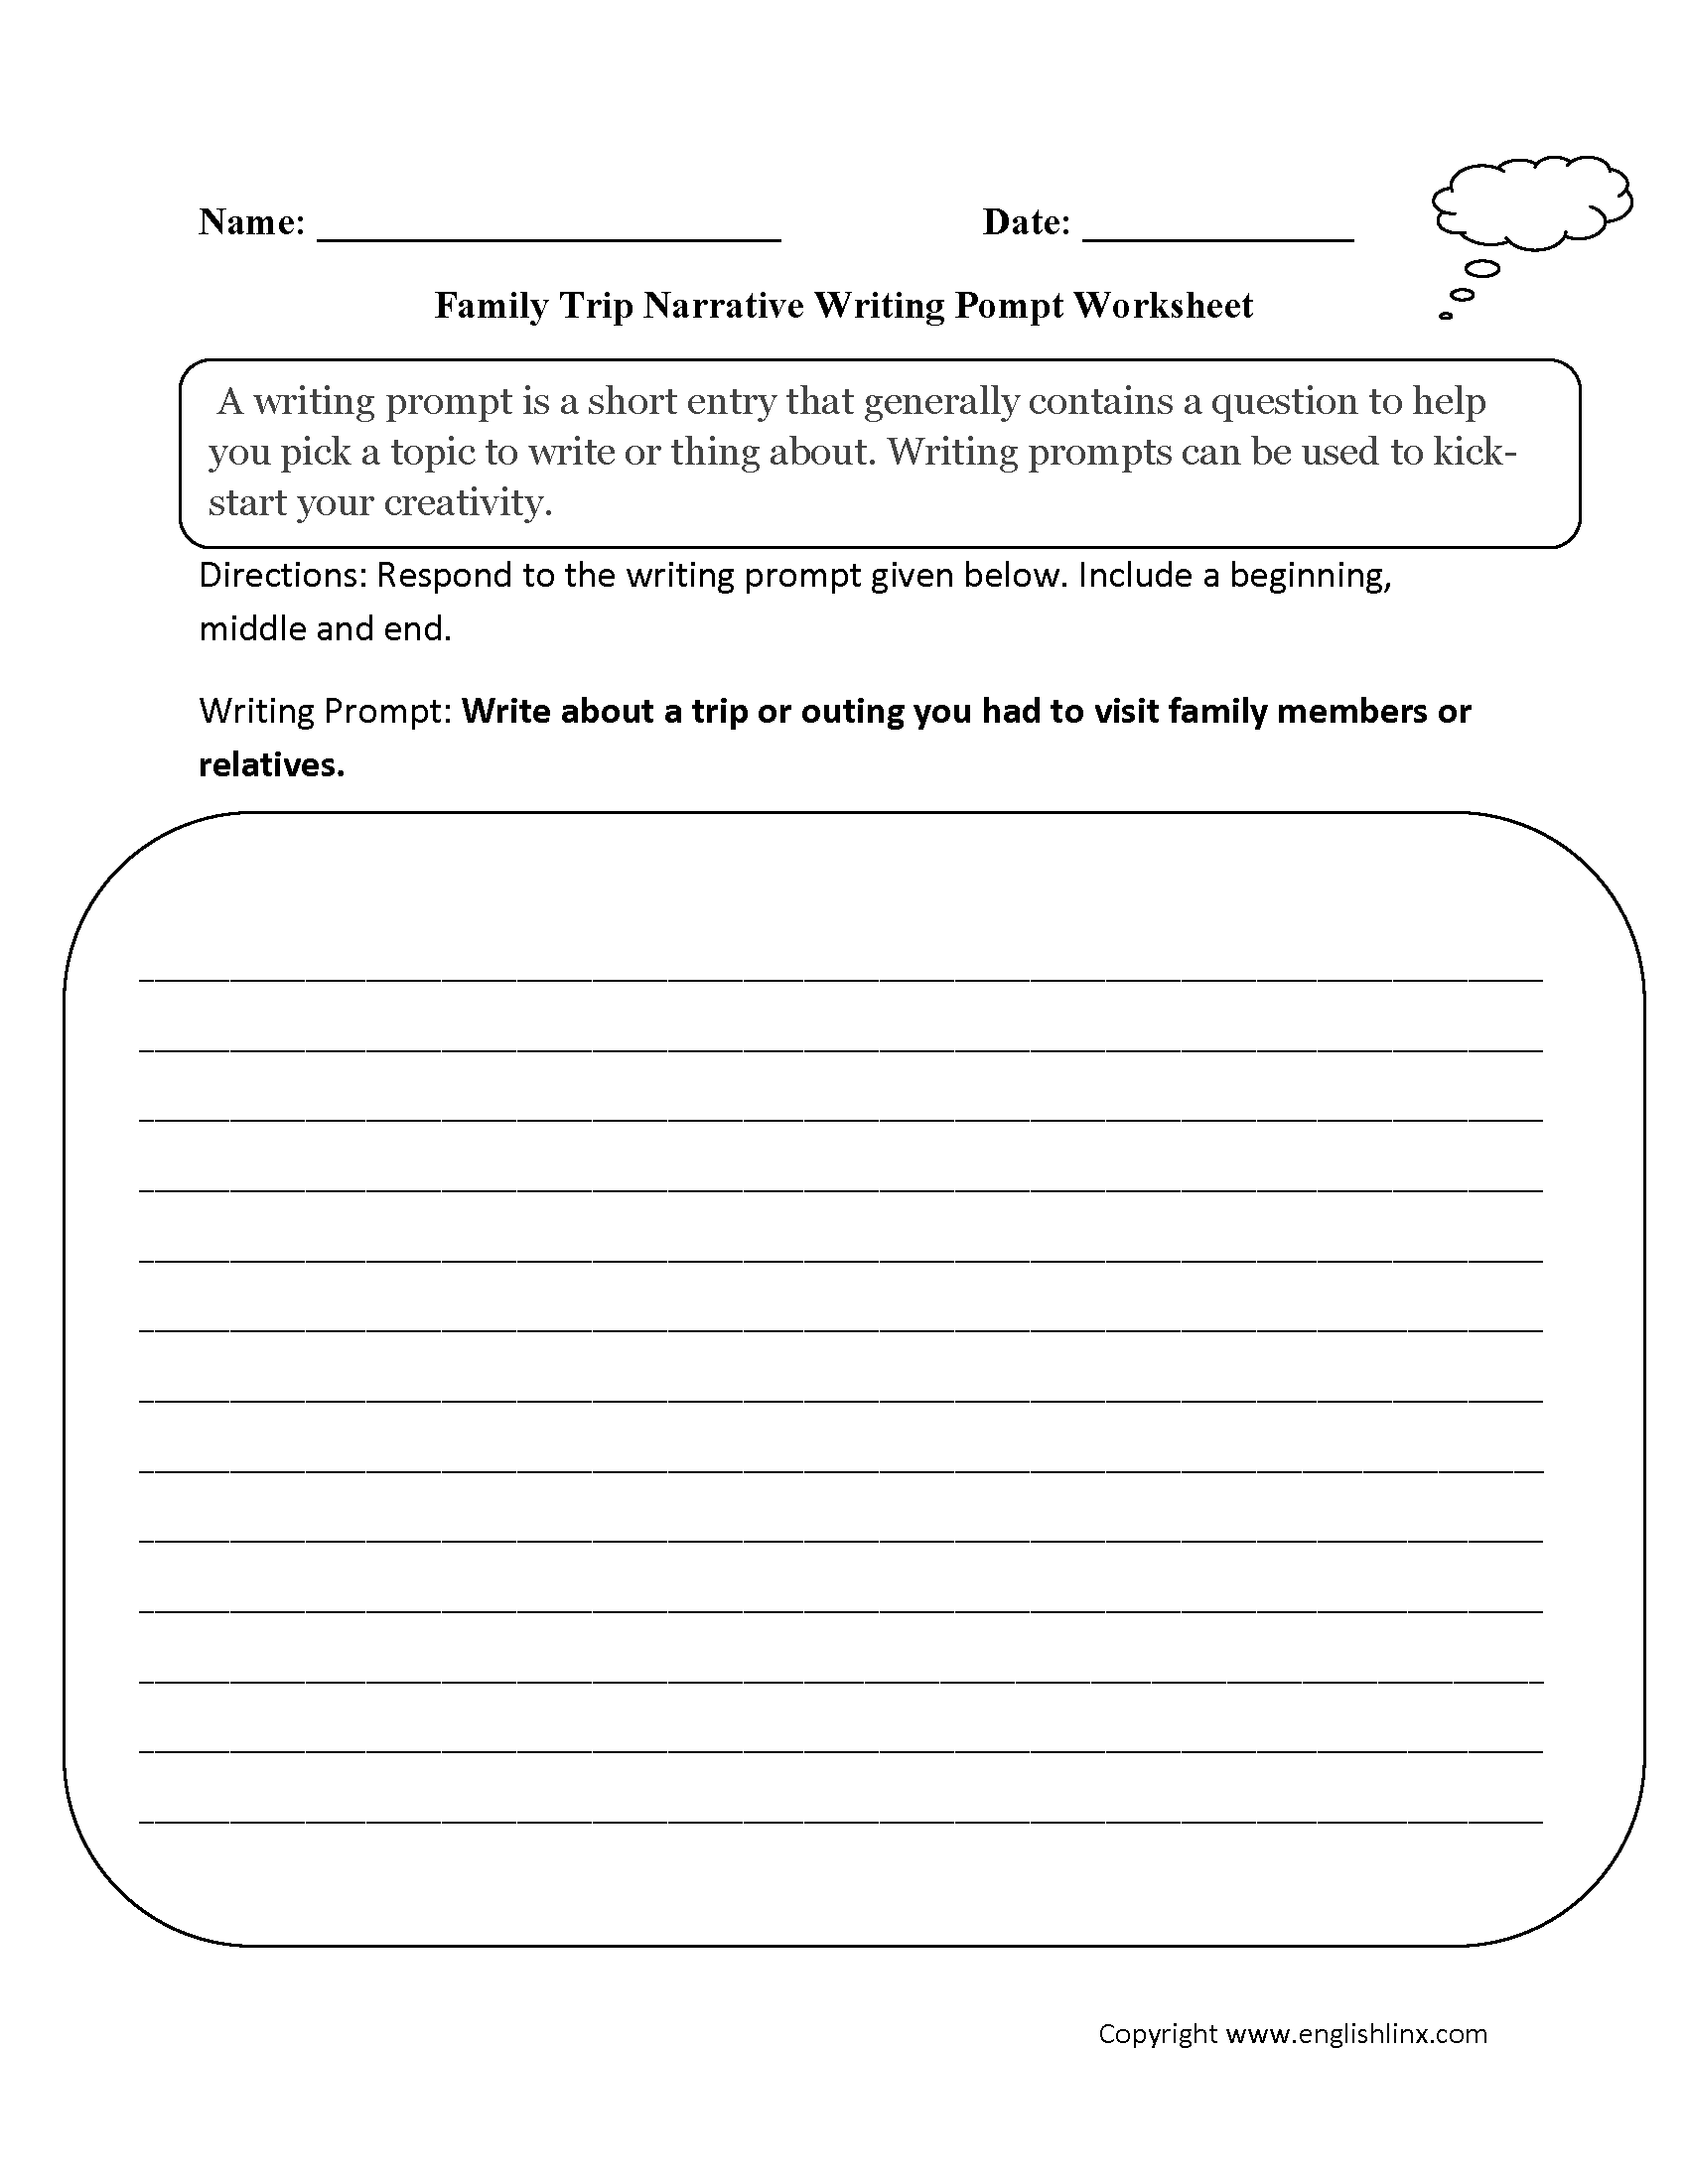 Essay Writing: My Family - Essay Writing Worksheet for 5th and 6th ...